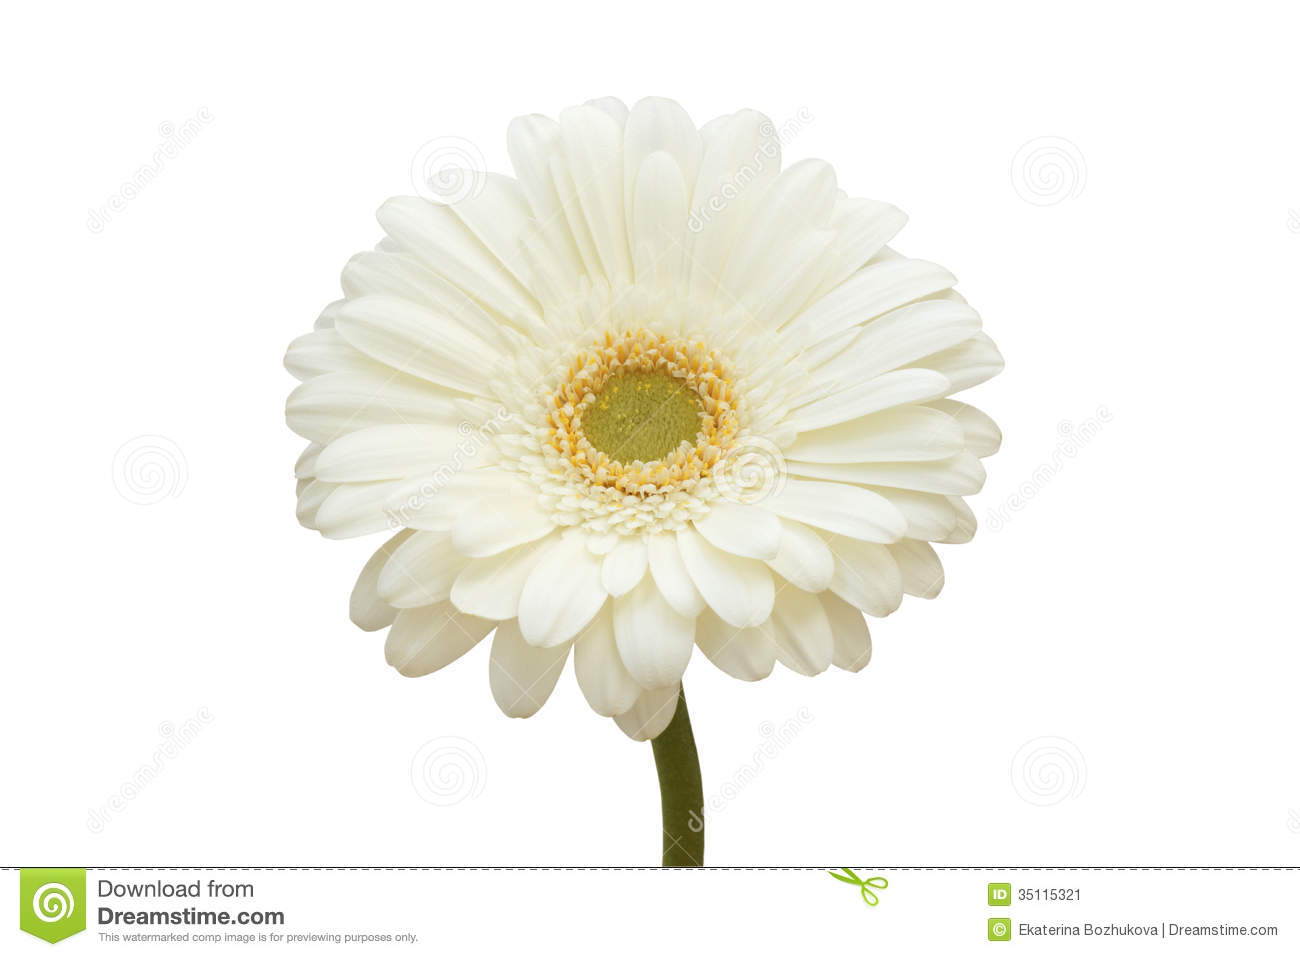 White gerbera flower stock image image of close flowers 35115321 download white gerbera flower stock image image of close flowers 35115321 mightylinksfo